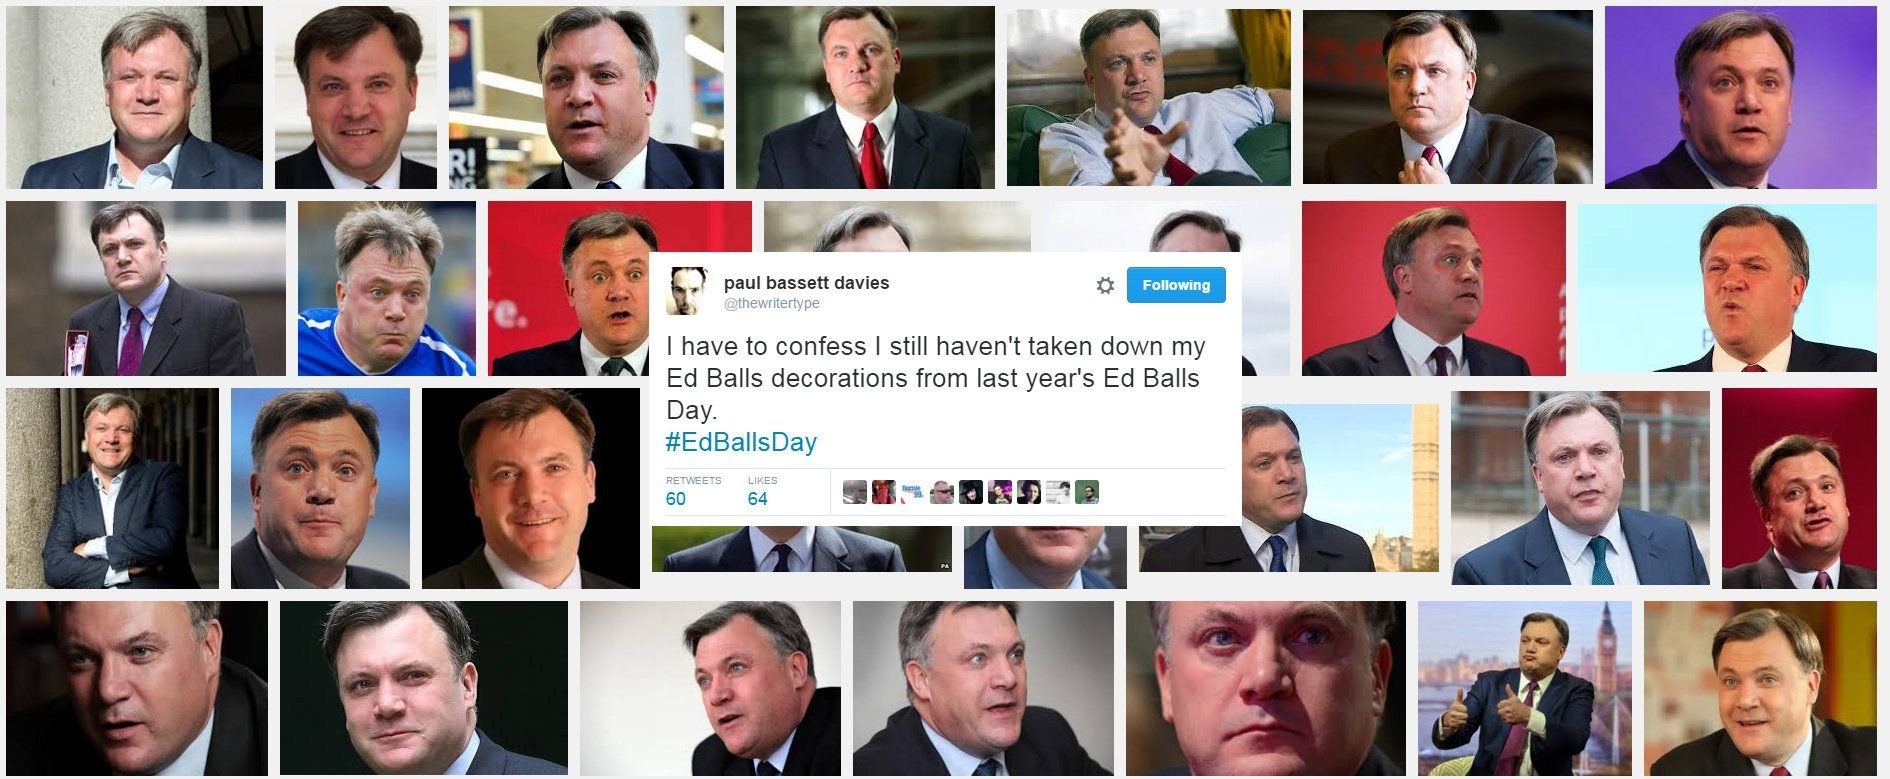 5 Signs We've Lost Sight Of The True Meaning Of Ed Balls